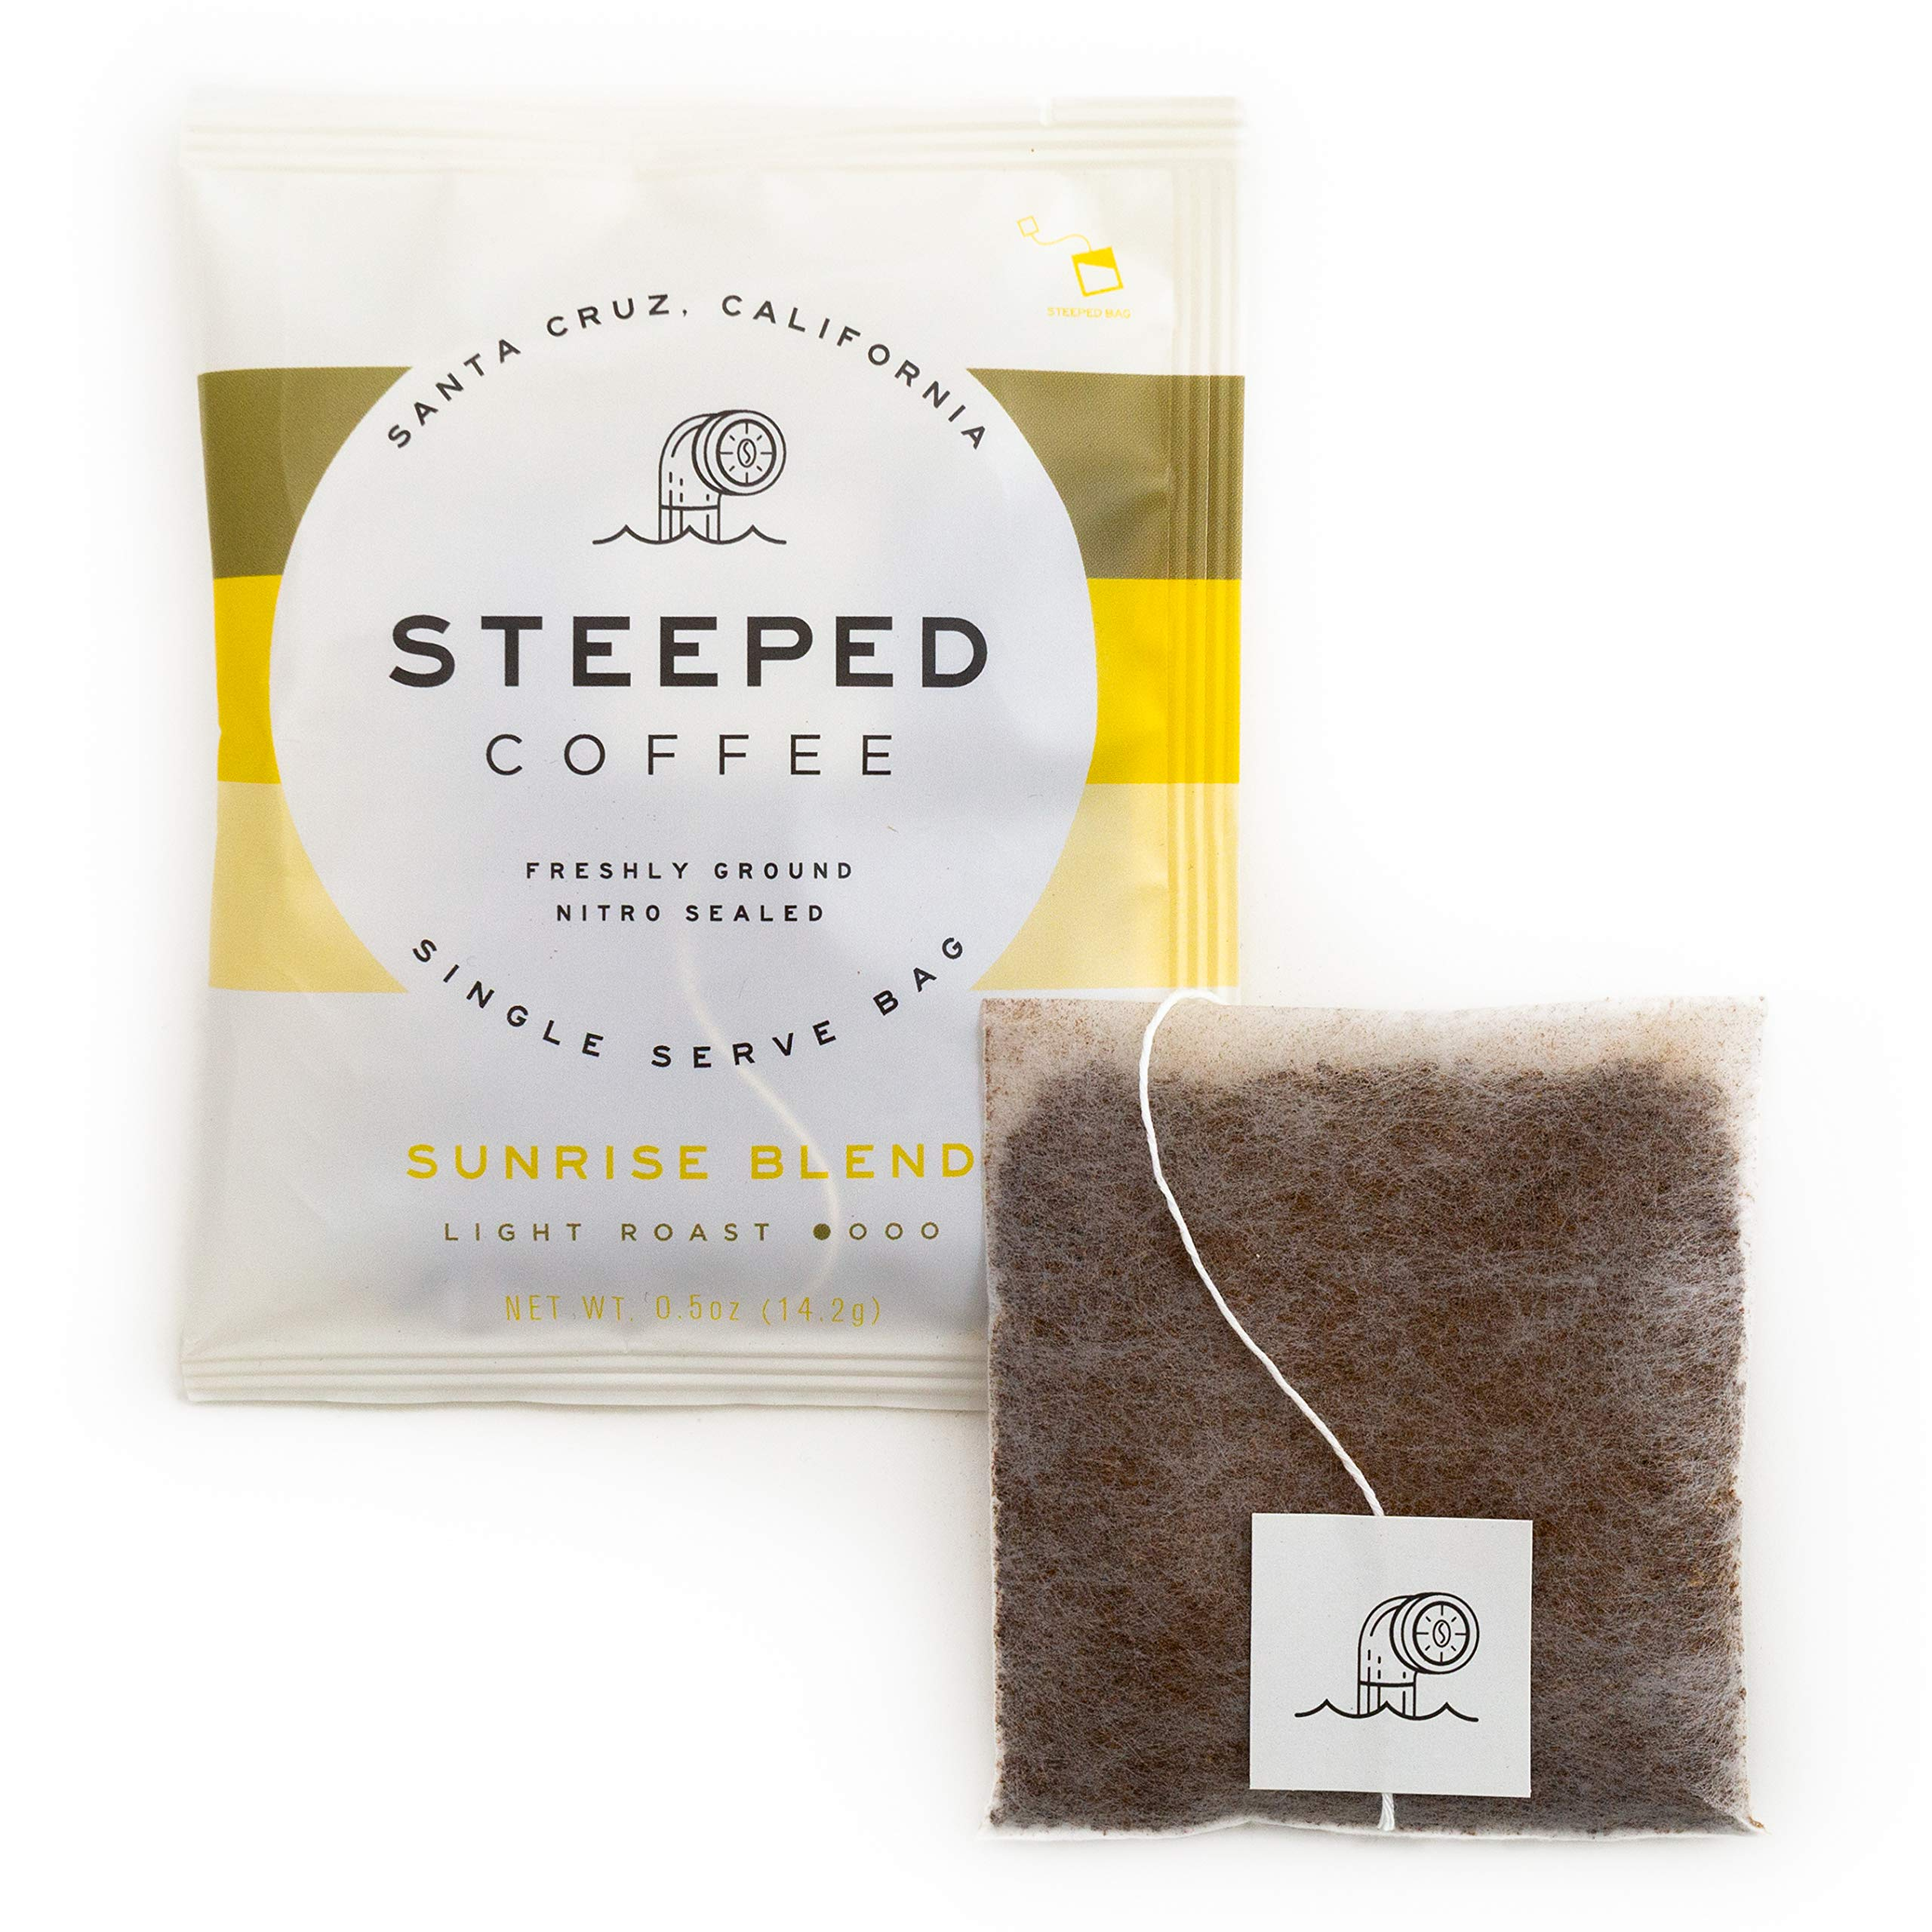 Steeped Coffee Single-Serve Packs - Just + Water - Direct Trade, Hand Roasted, Specialty Grade - Nitro Sealed, Eco-Friendly - Sunrise Blend, Light Roast (8-Pack)